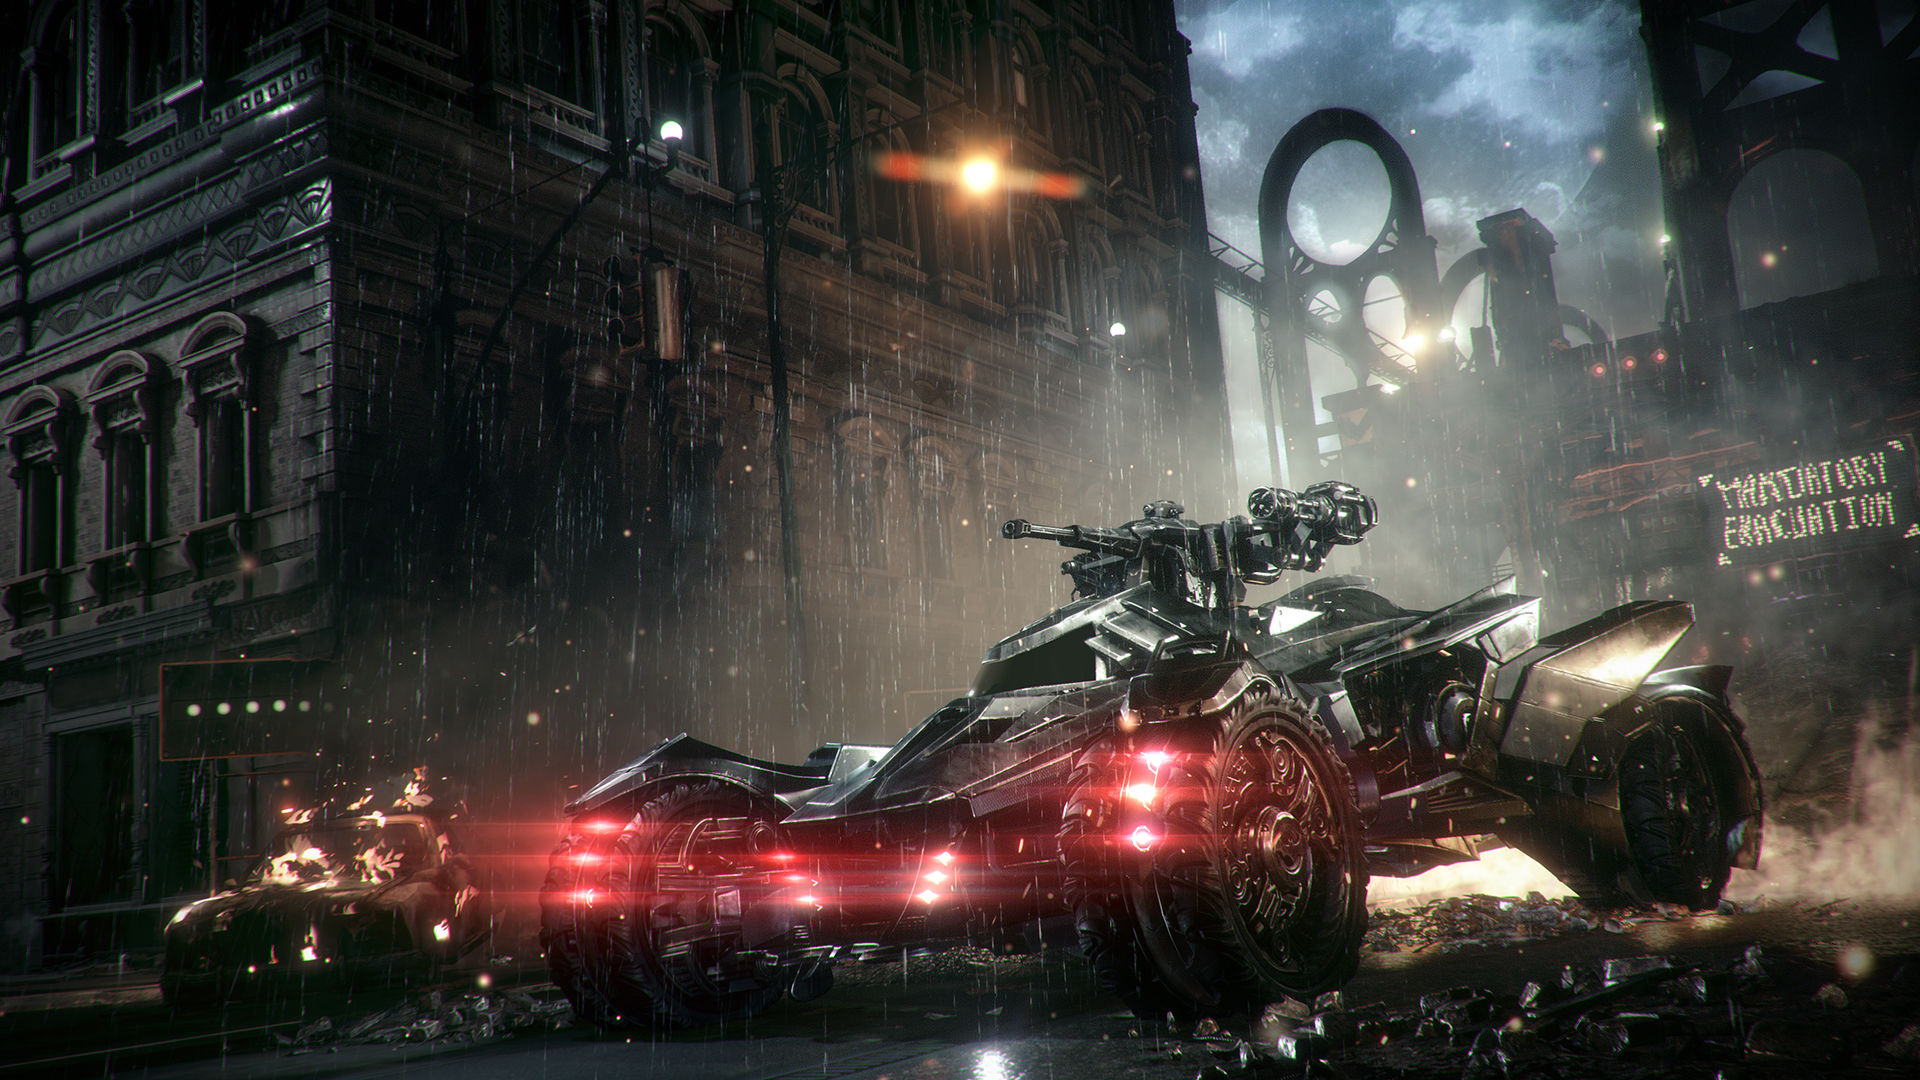 HD Wallpapers Batmobile in Arkham Knight